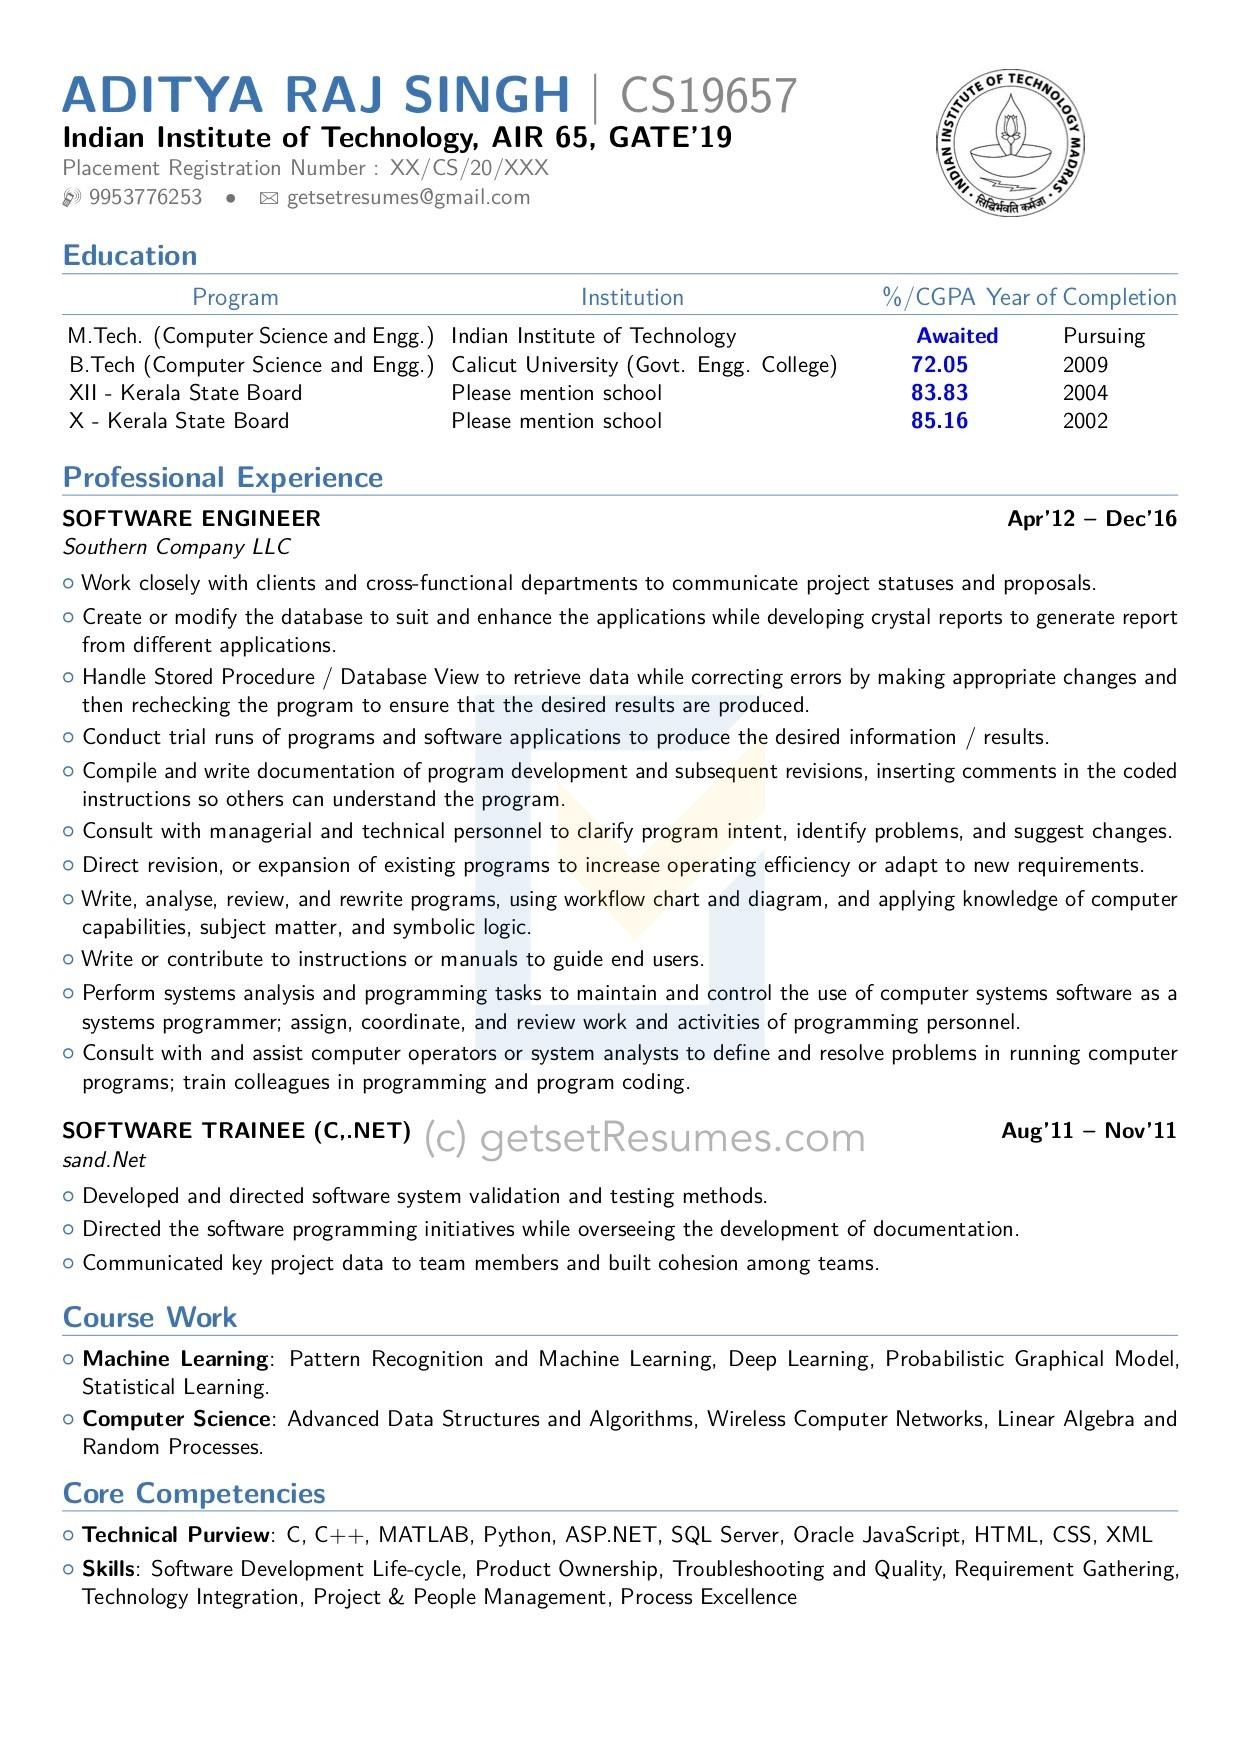 Latex Resume by Get Set Resumes. We are one of the few firms that can prepare a Latex Resume for you.